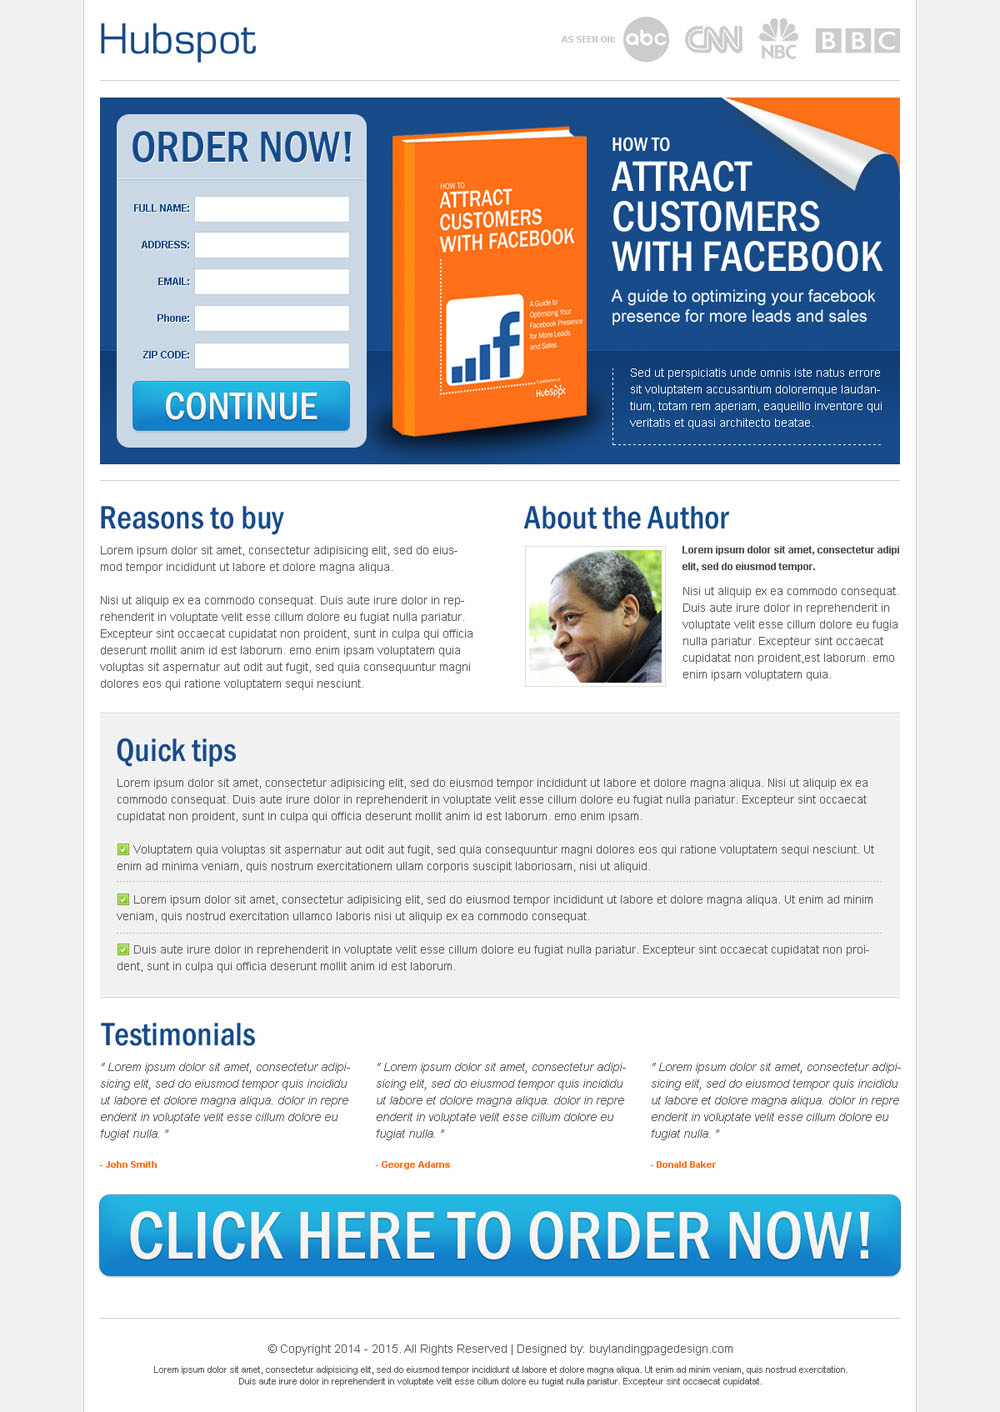 e-book-selling-landing-page-design-templates-to-capture-leads-and-increase-sales-018